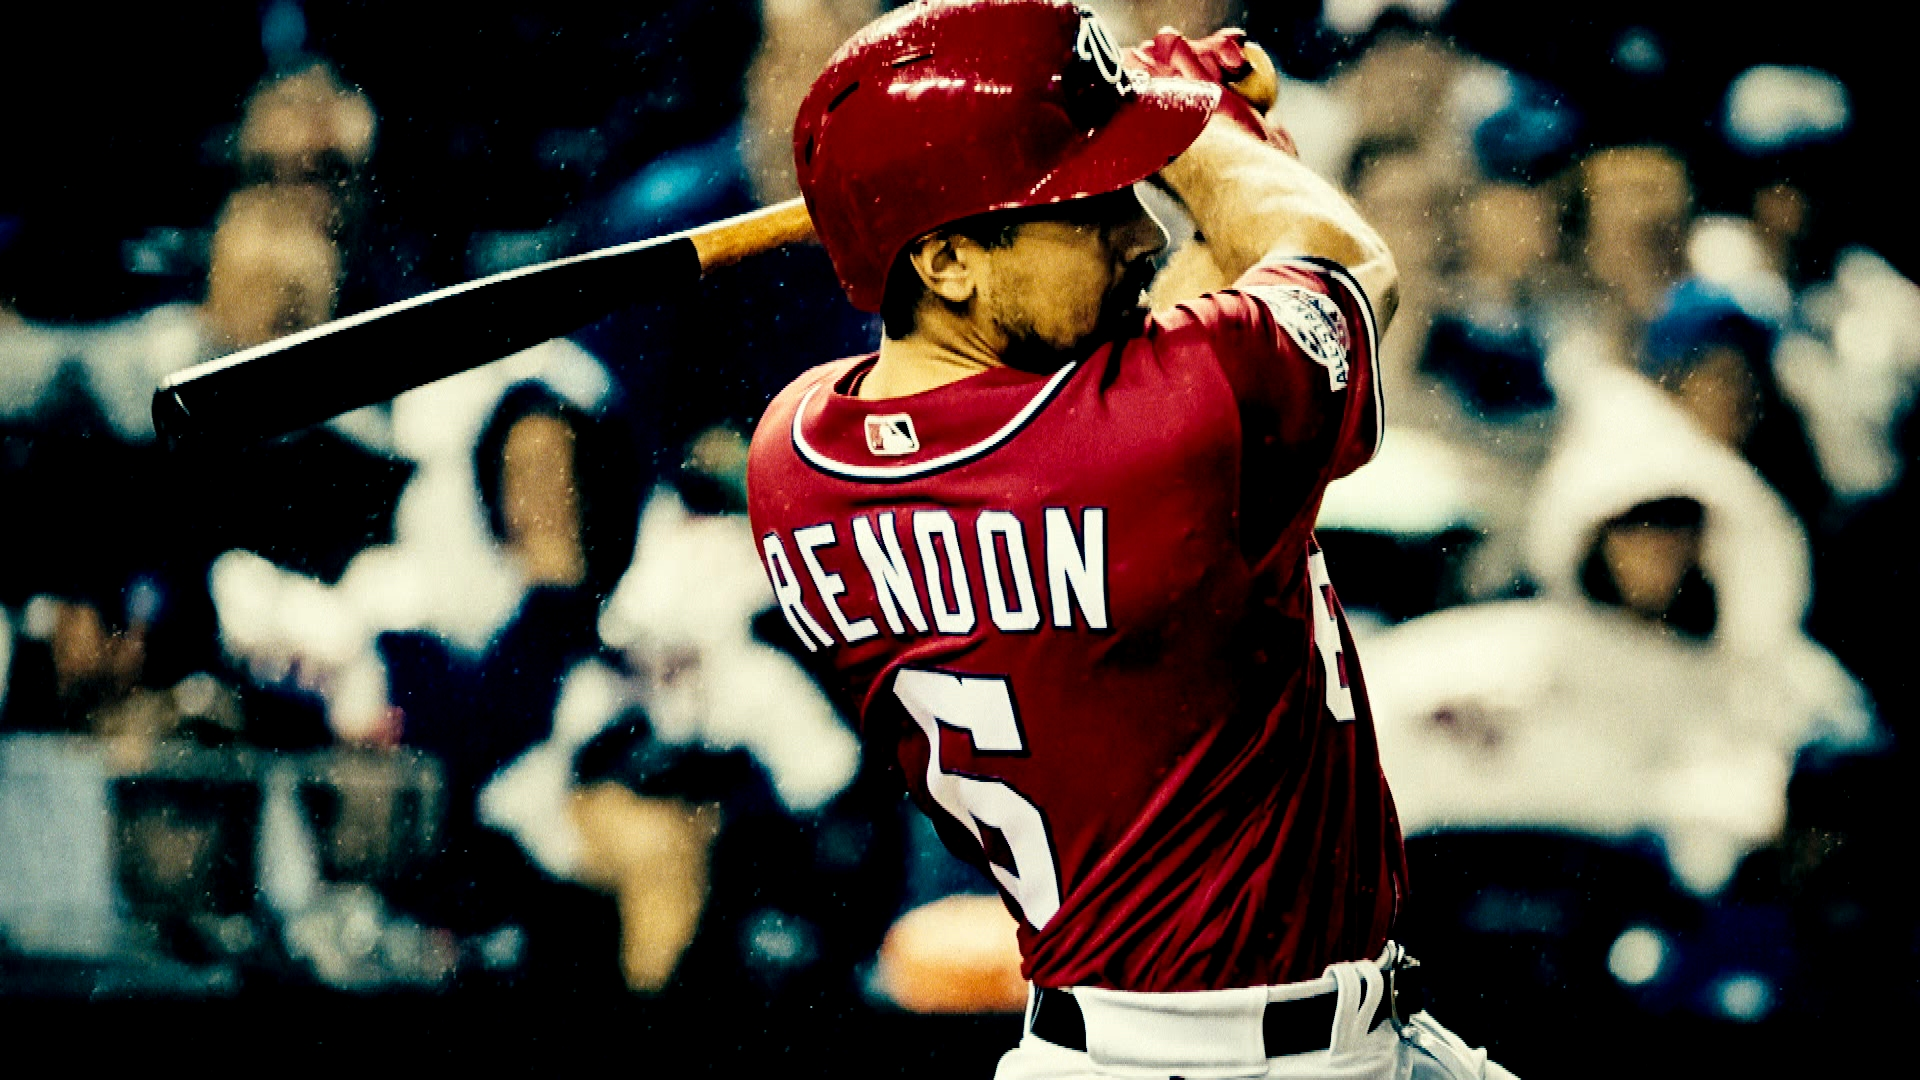 reputable site 6bedb 902d4 2019 Fantasy Baseball Preview: Anthony Rendon, Washington ...